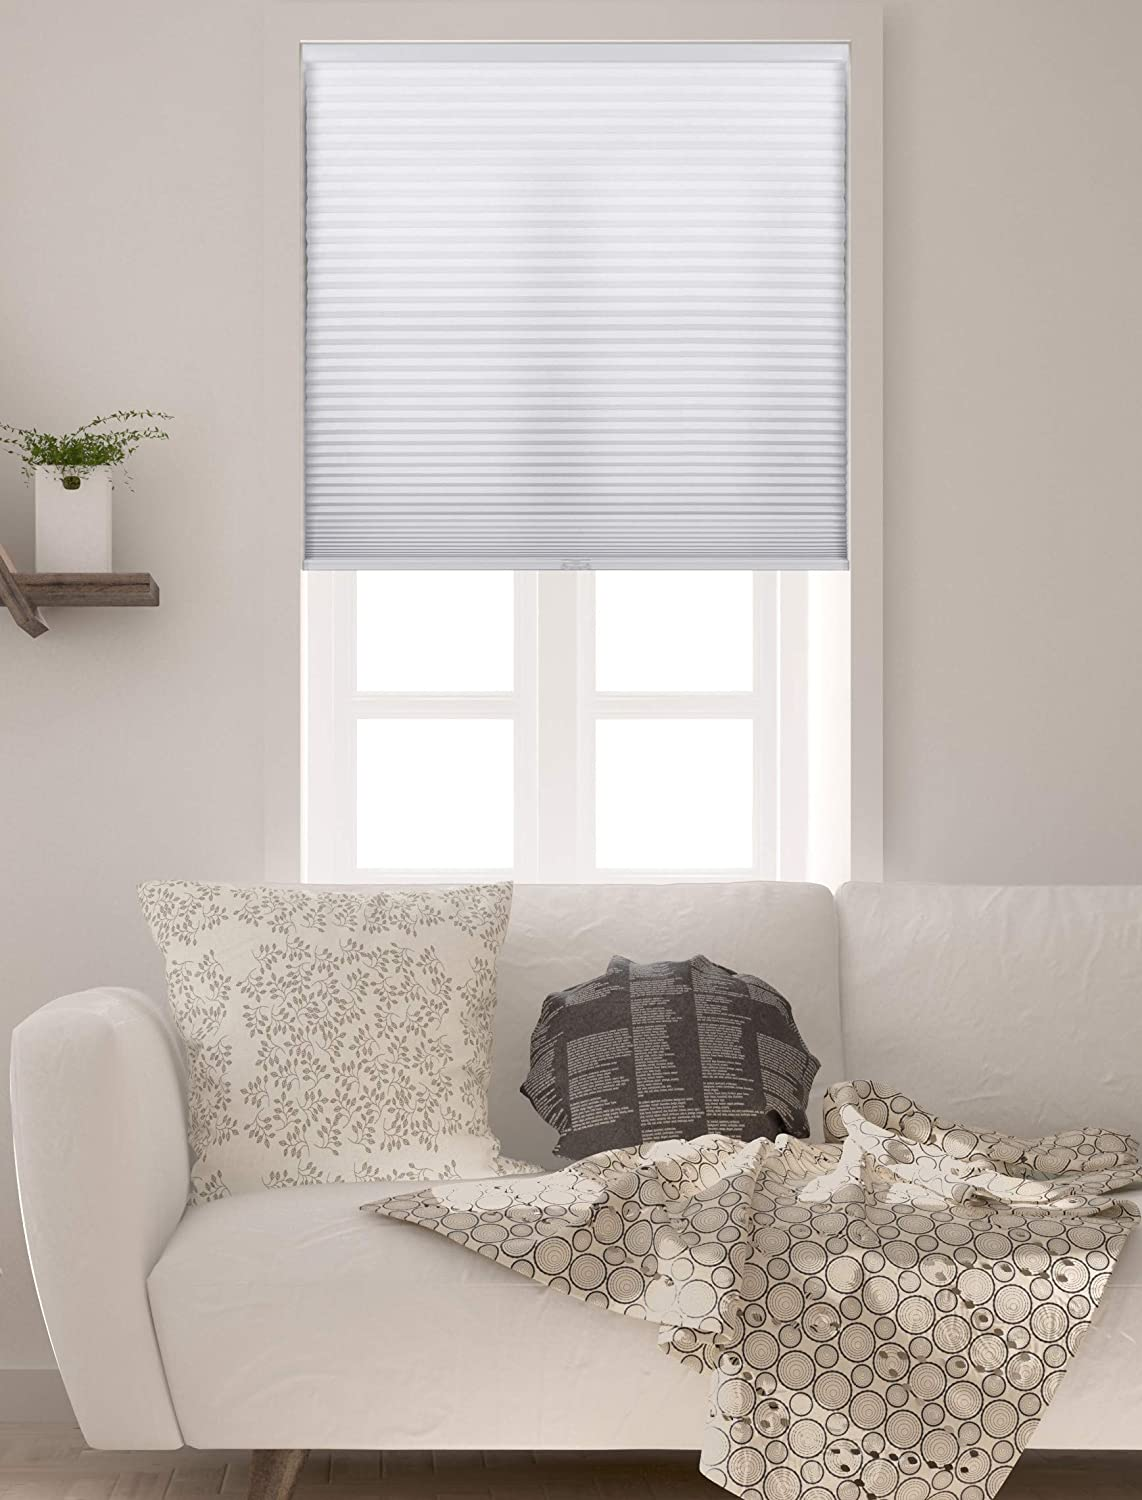 Arlo Blinds Single Cell Light Filtering Cordless Cellular Shades, Color: Pure White, Size: 34